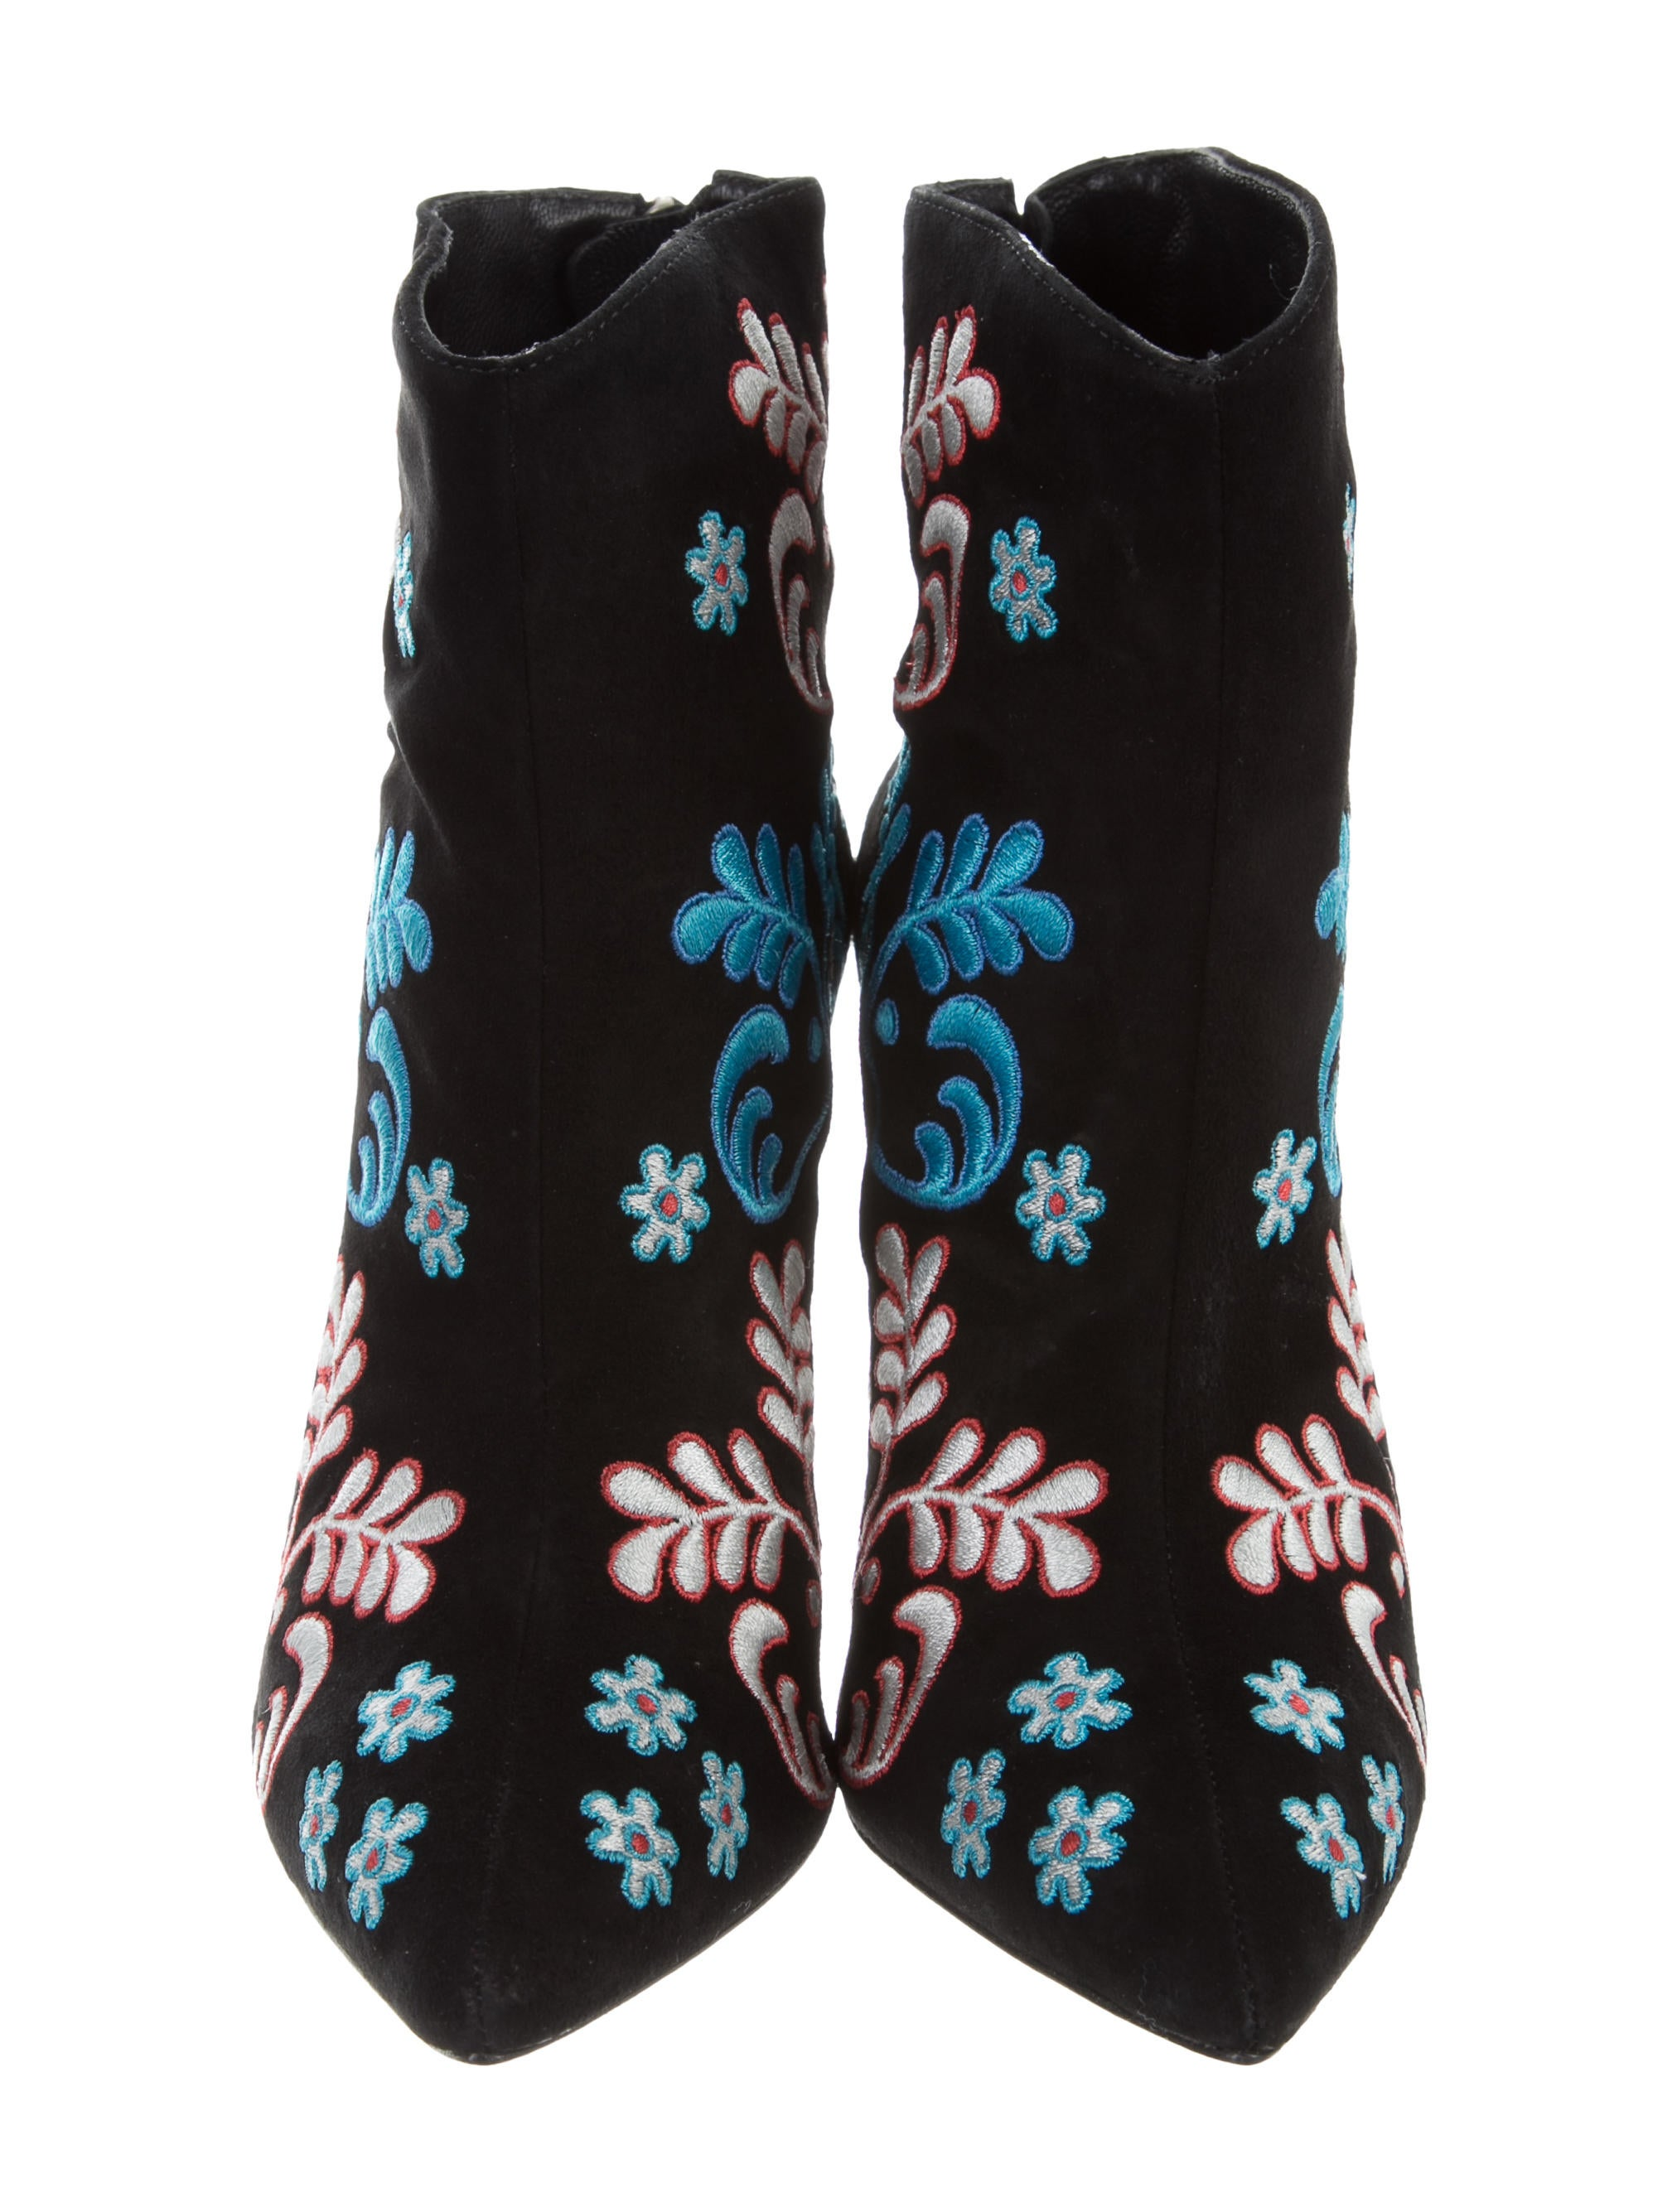 Isa Tapia Alondra Embroidered Ankle Boots Shoes Itp20147 The Detail